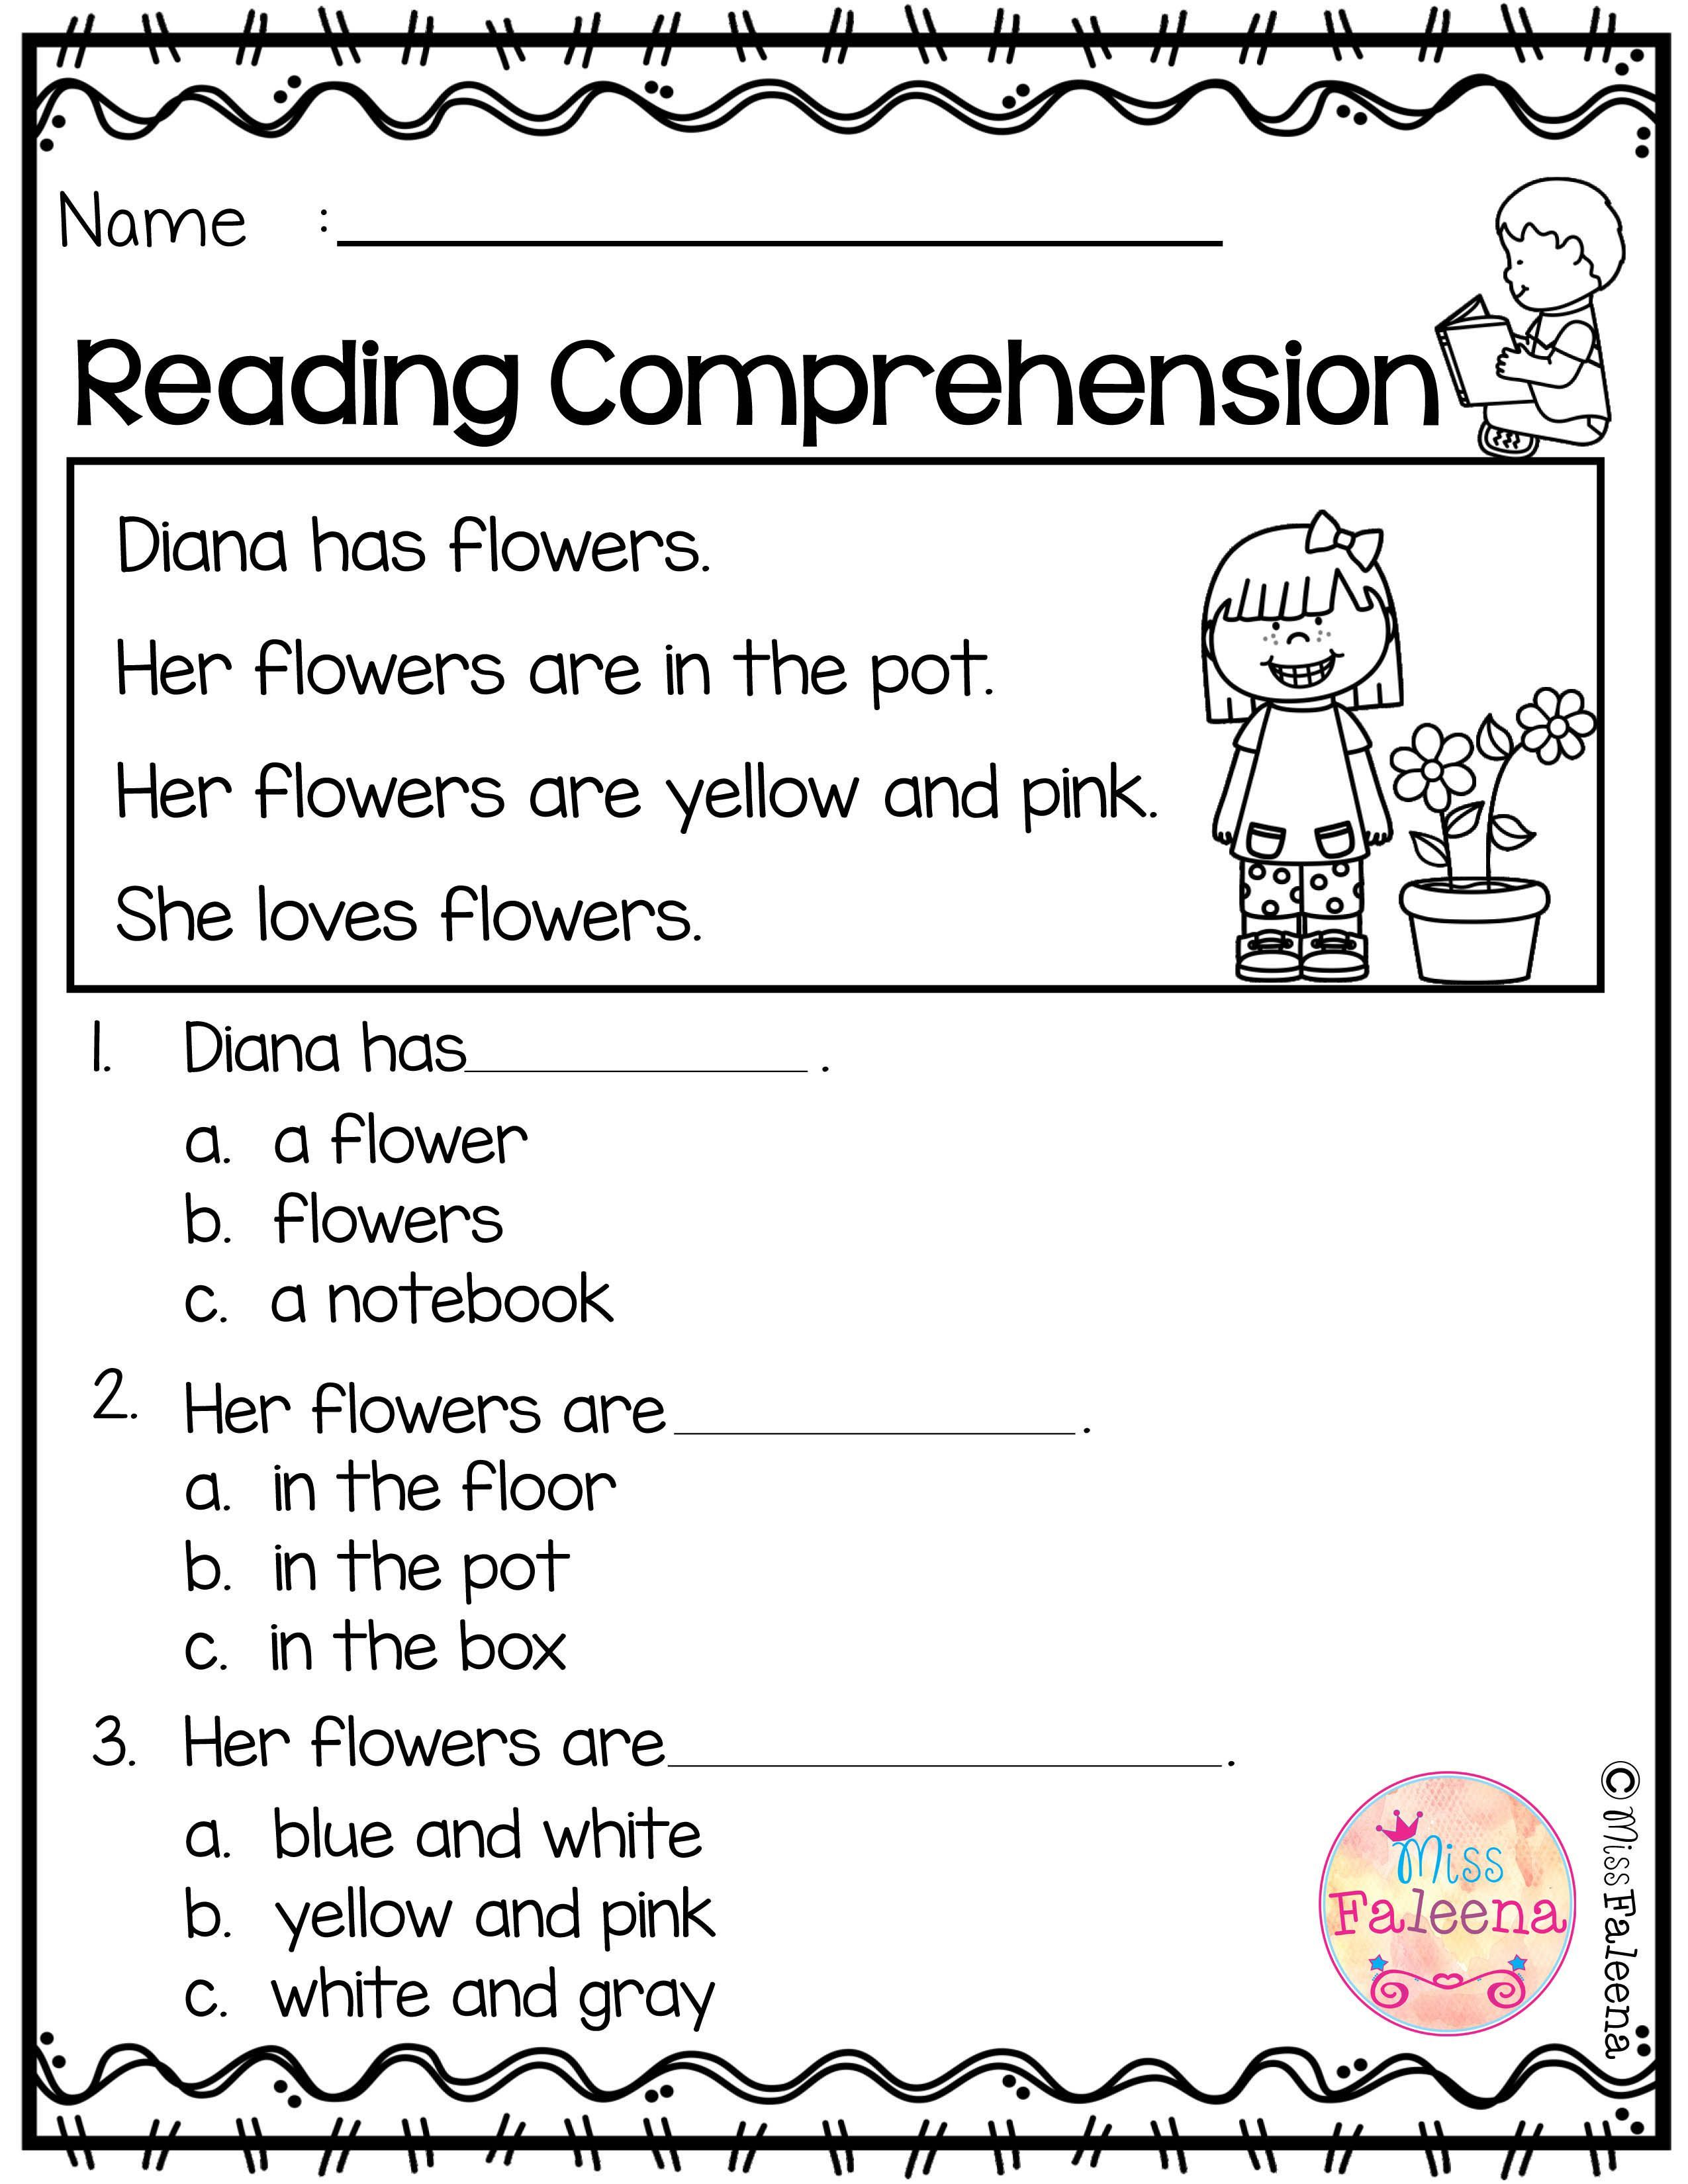 Free Printable Reading Worksheets For Preschool